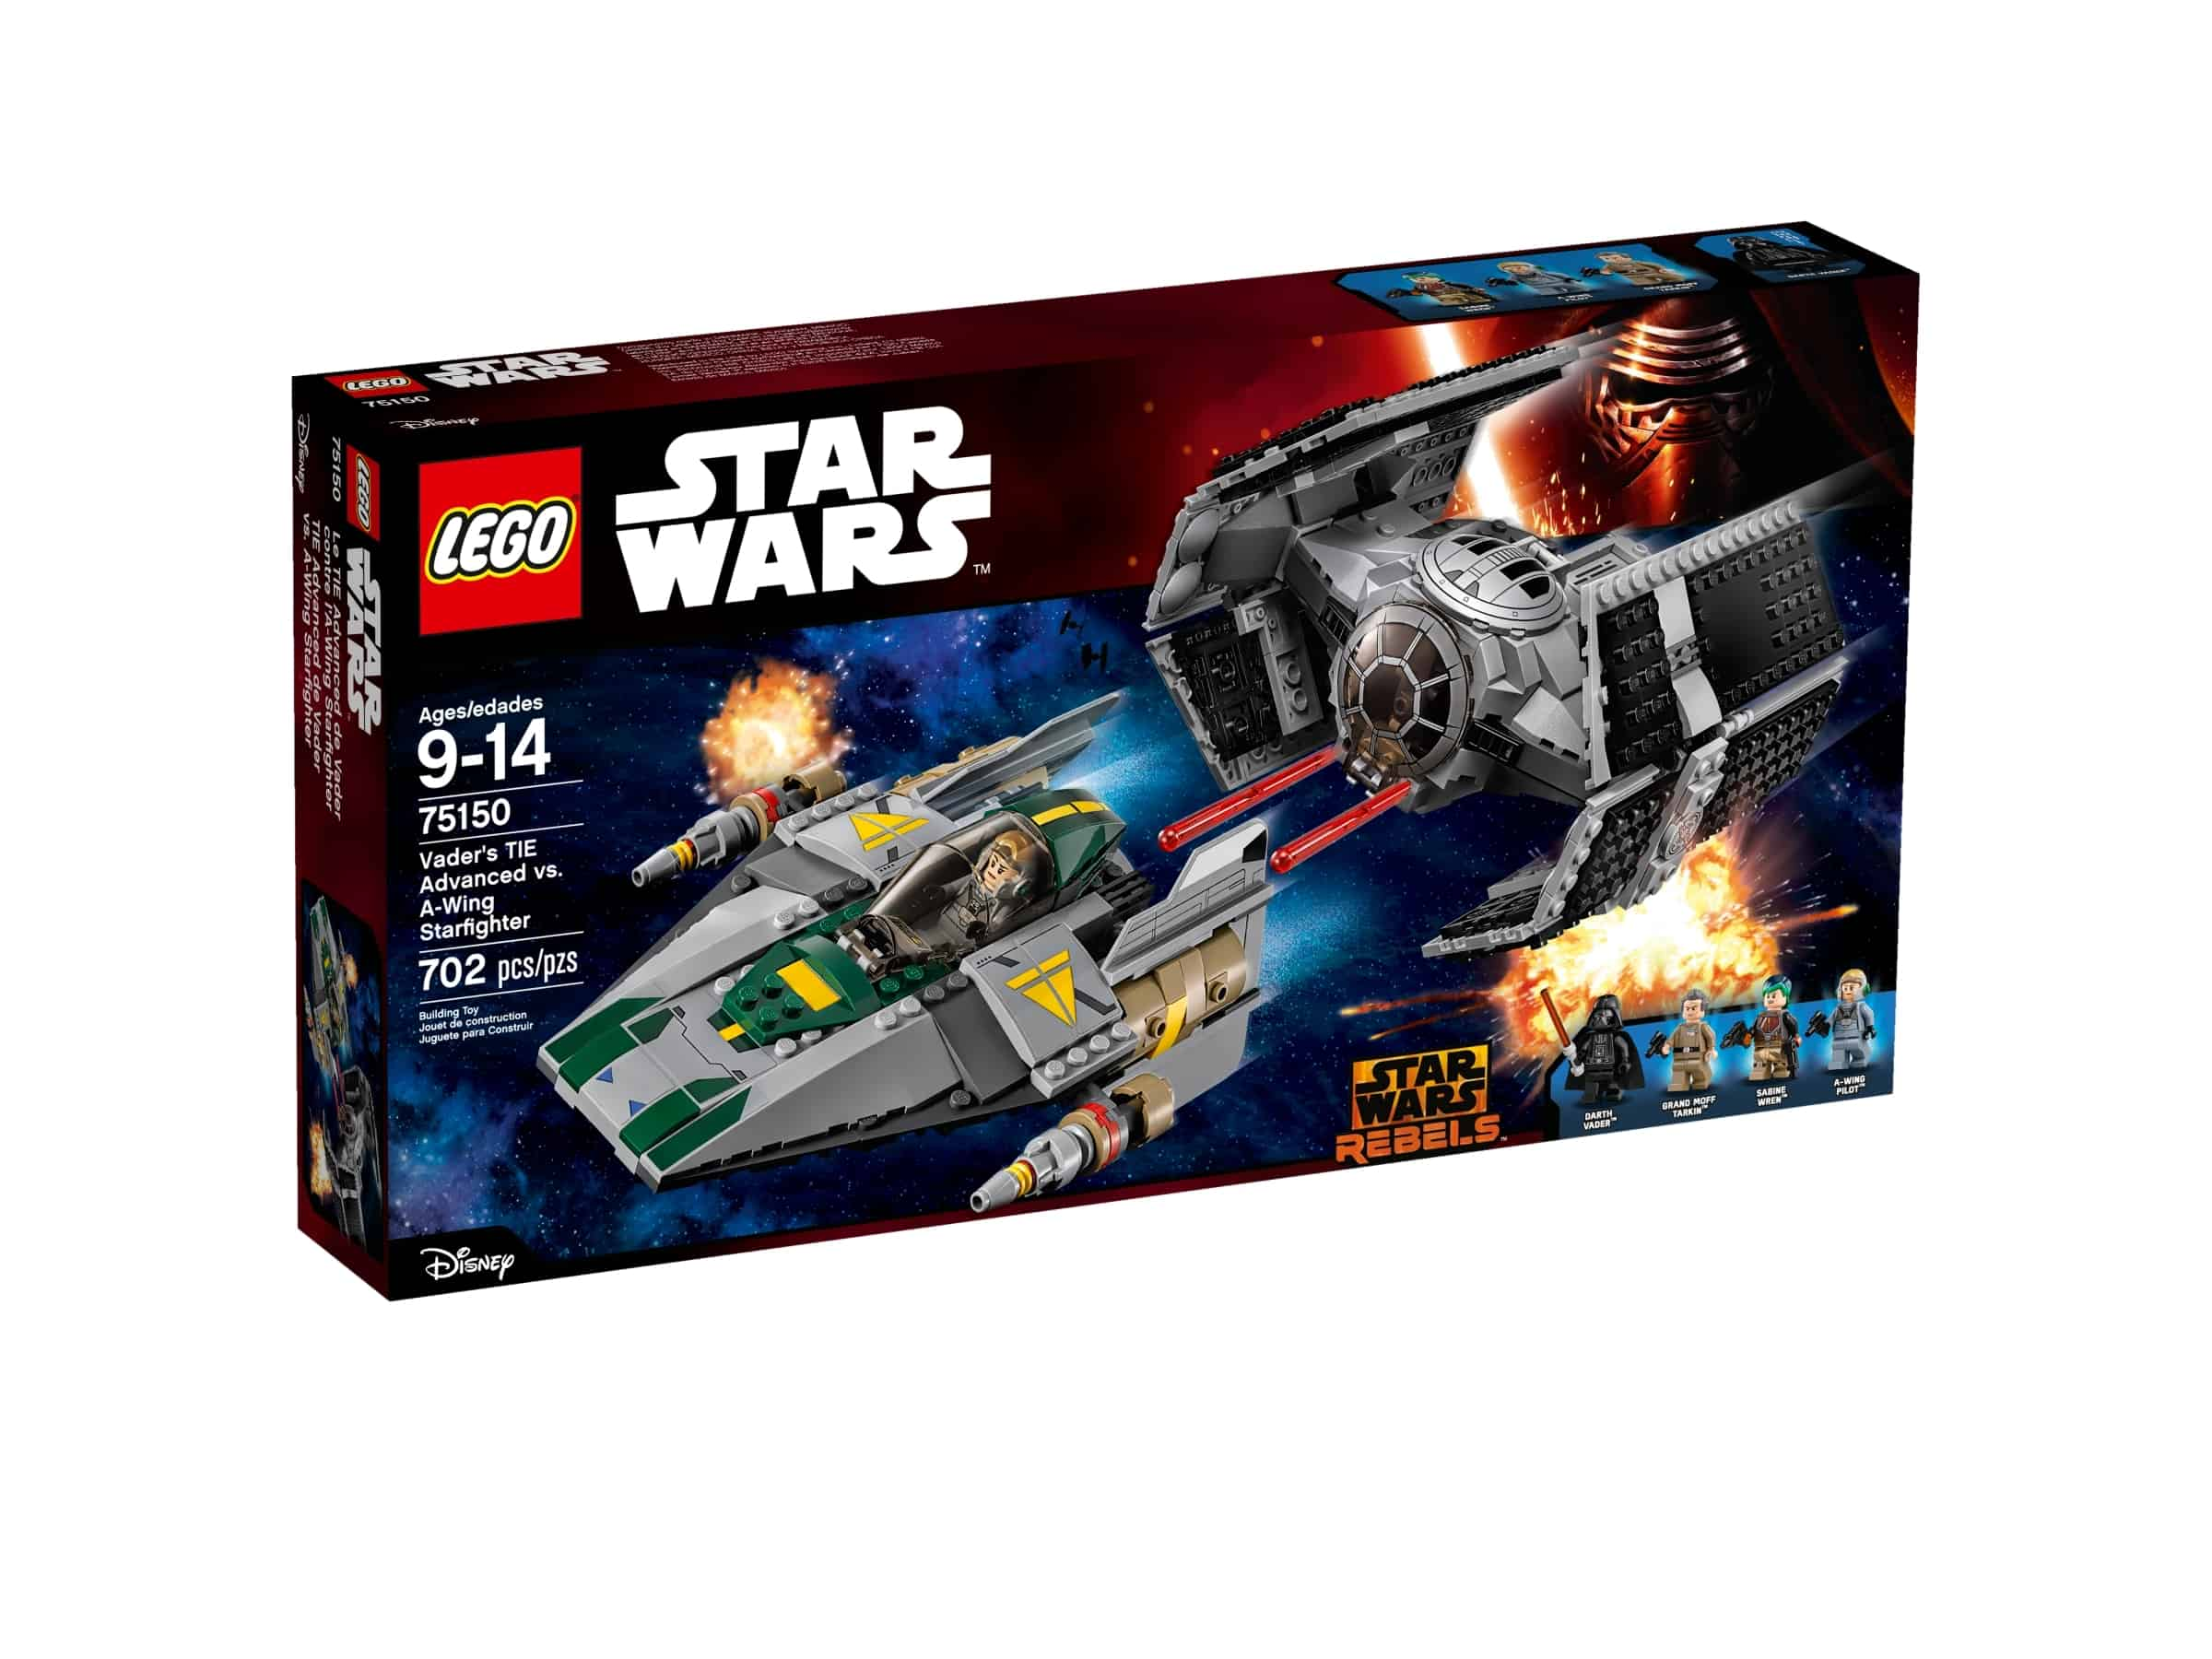 lego 75150 vaders tie advanced mot a wing starfighter